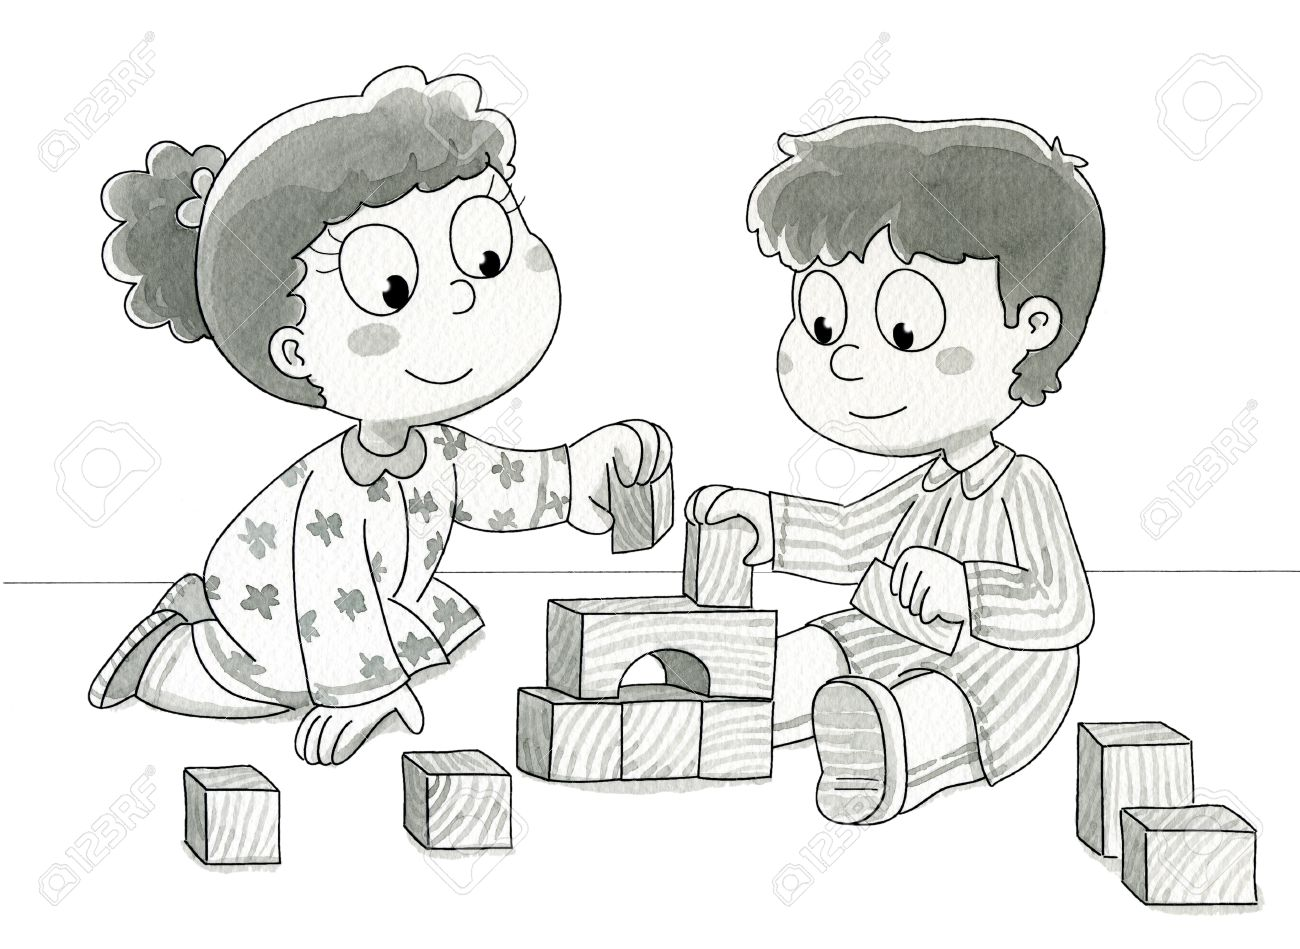 two cute children playing with bricks black and white watercolor